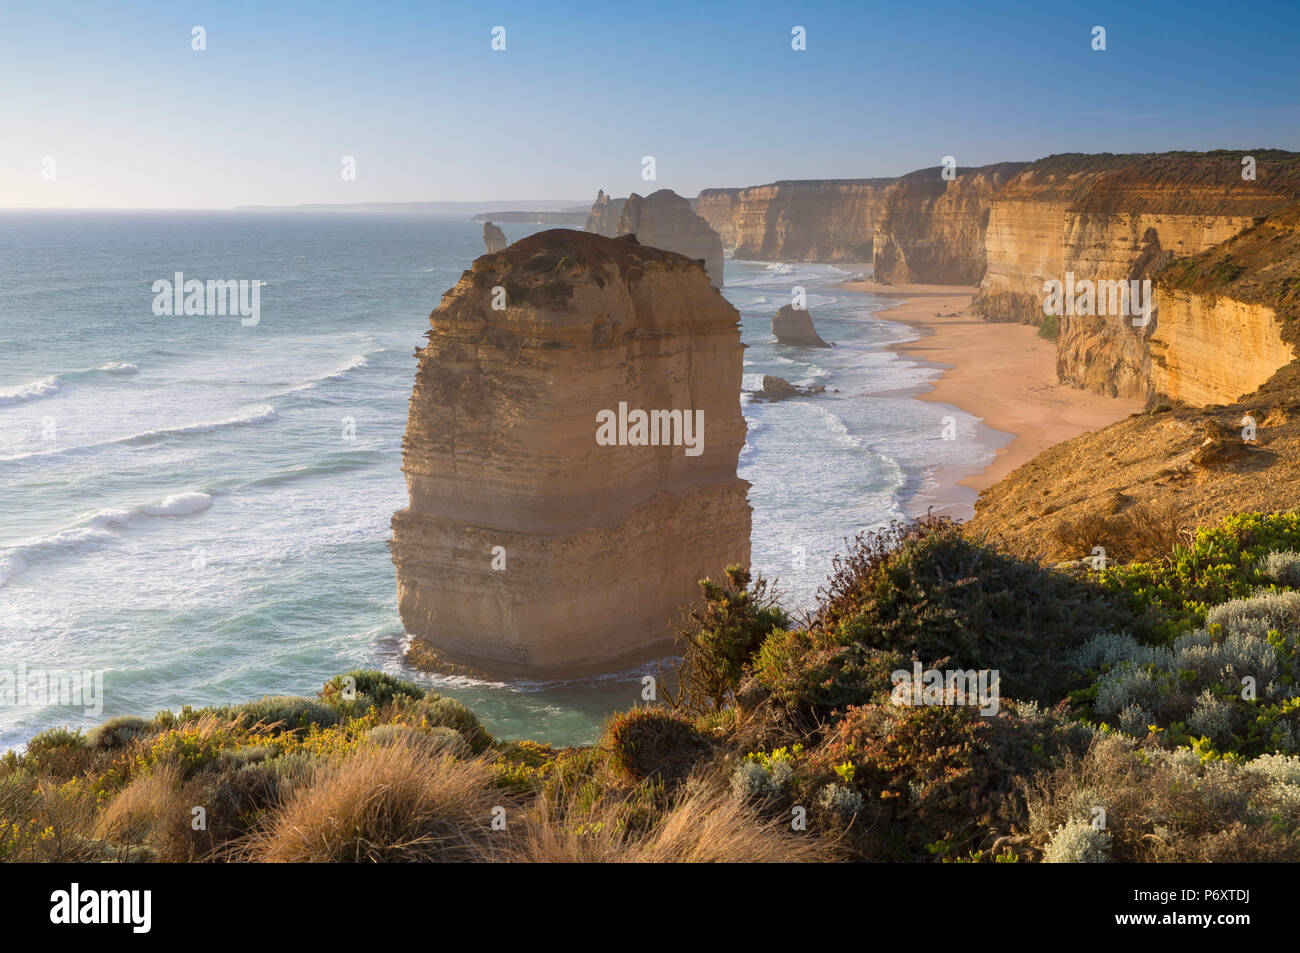 Zwölf Apostel, Port Campbell National Park, Great Ocean Road, Victoria, Australien Stockbild